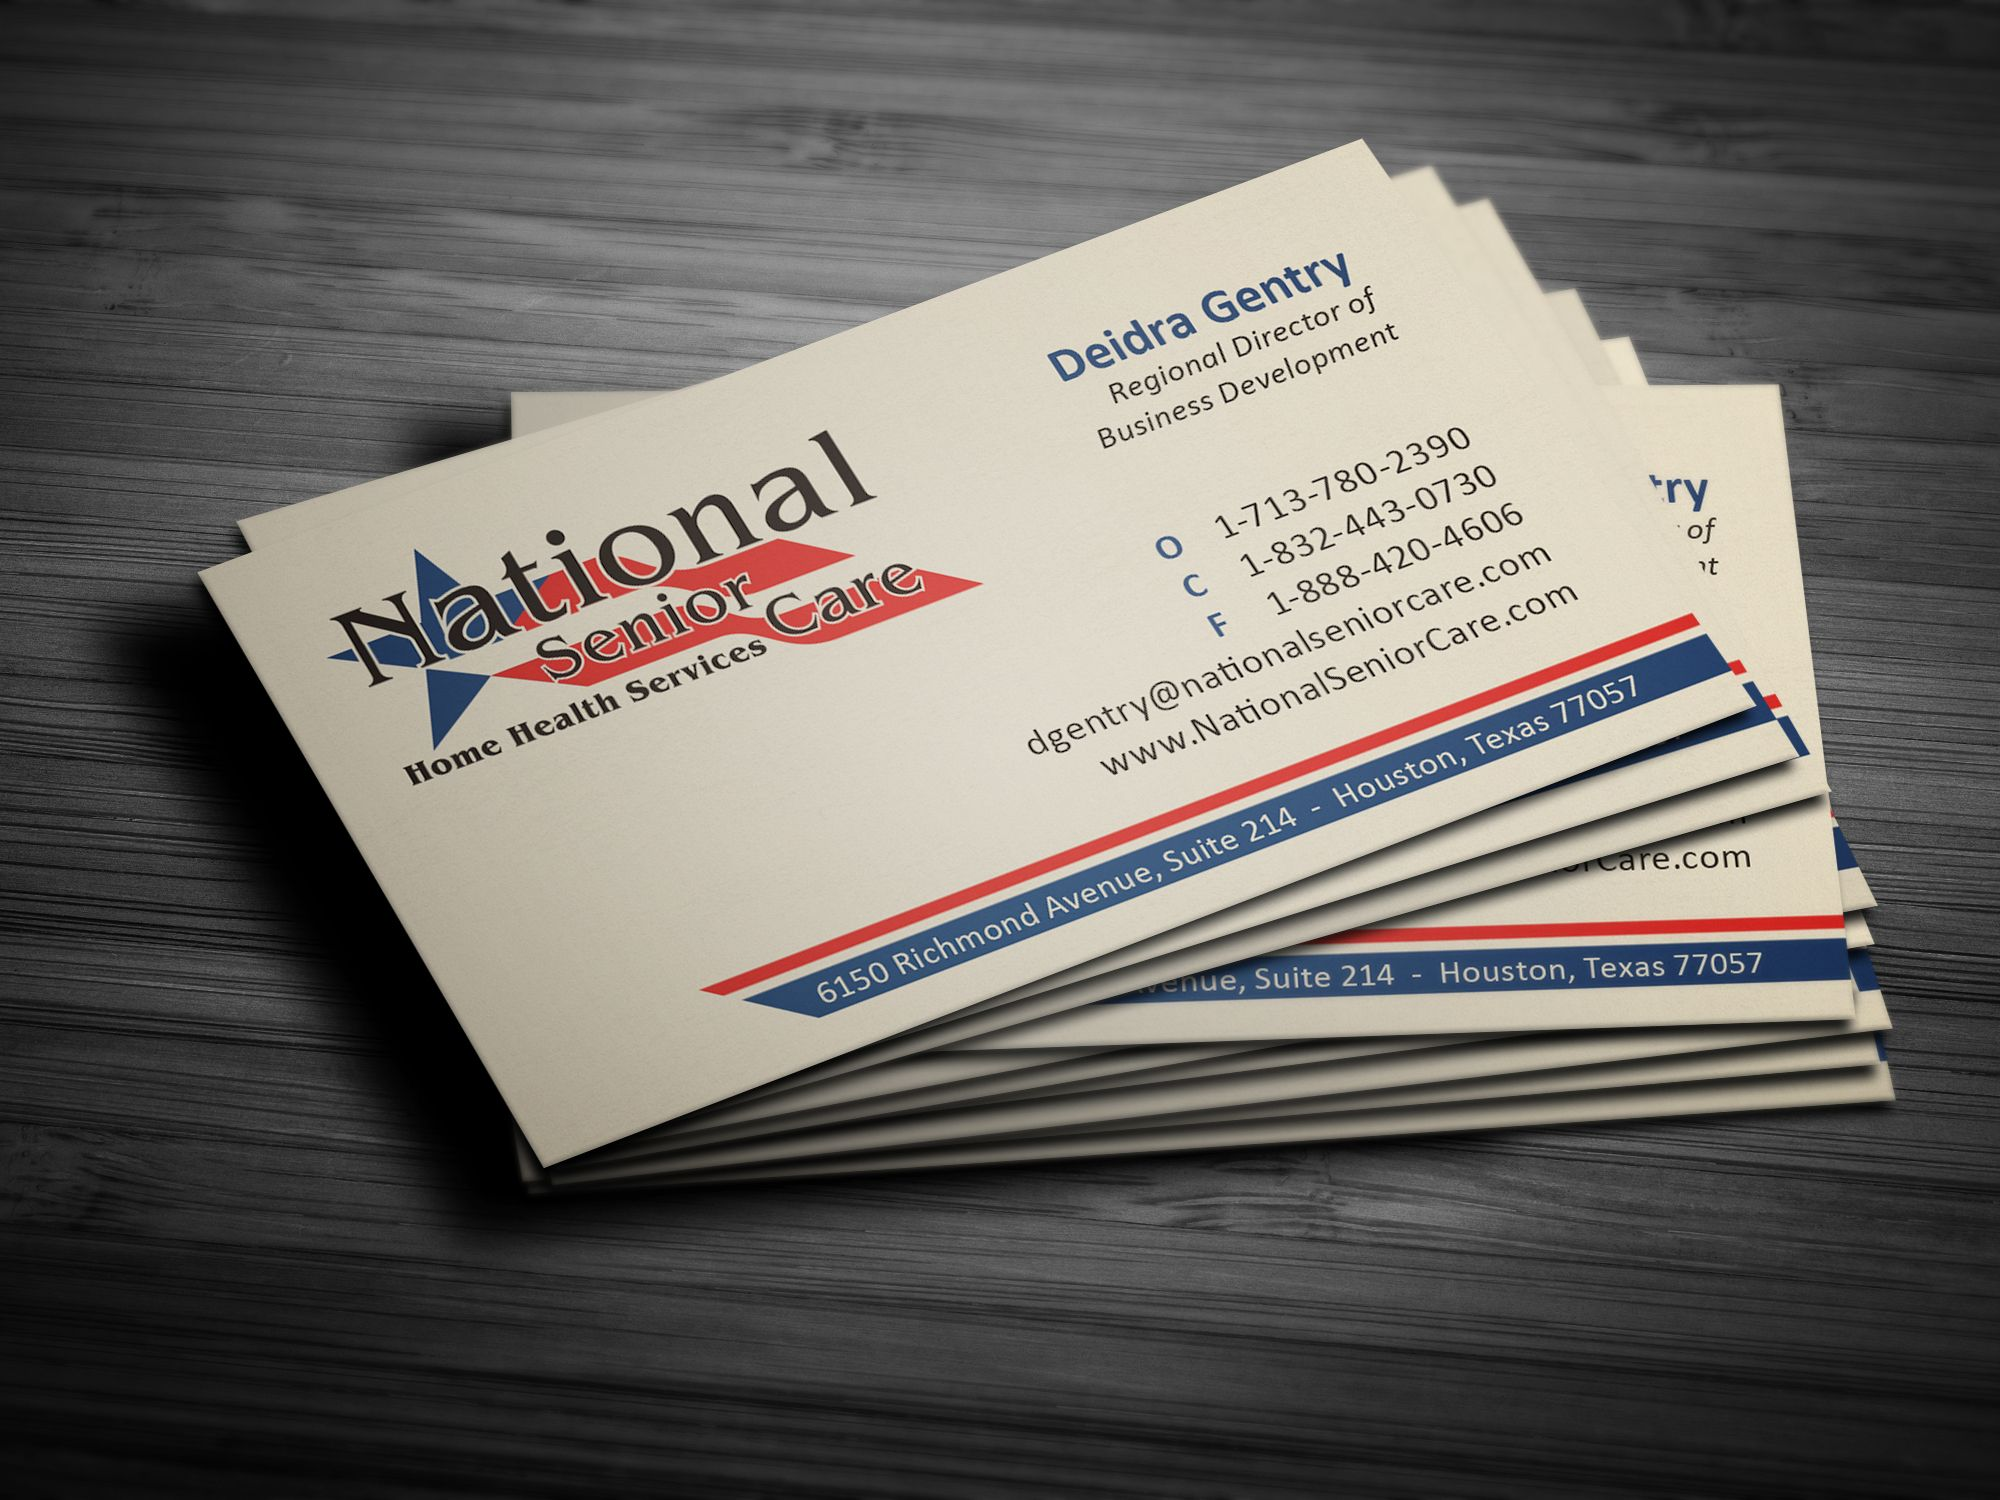 National senior care business card printed by alphagraphics sugar national senior care business card printed by alphagraphics sugar land reheart Image collections